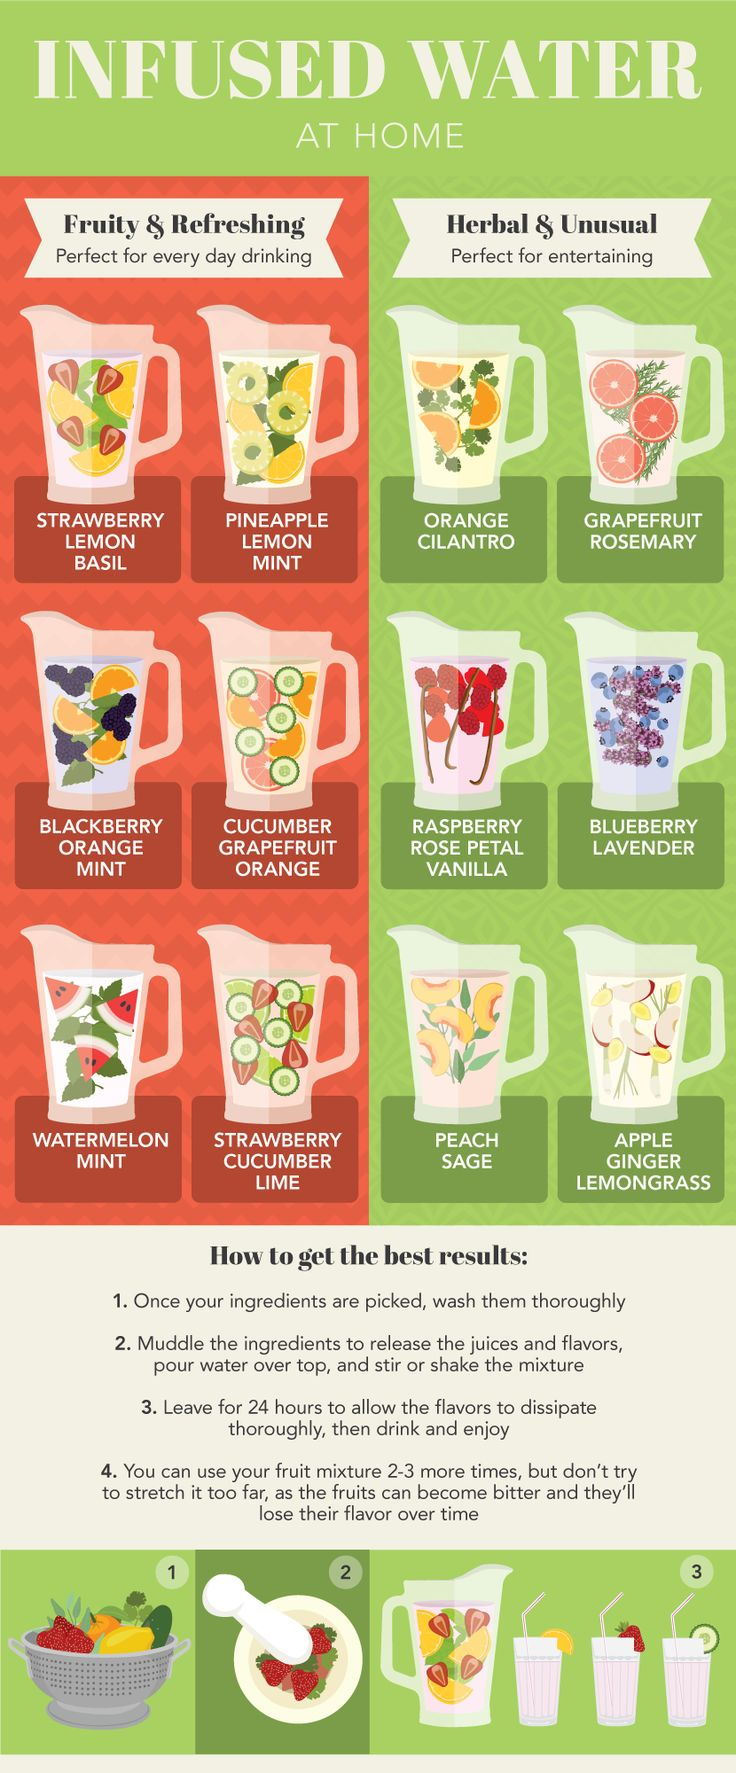 12 Fruit-Infused Water Combos To Keep You Hydrated All Summer  http://www.rodalesorganiclife.com/food/12-fruit-infused-water-combos-to-keep-you-hydrated-all-summer?cid=soc_Rodale%2527s%2520Organic%2520Life%2520-%2520Rodale%2527s%2520Organic%2520Life%2520-%2520RodalesOrganicLife_FBPAGE_Rodale%2527s%2520Organic%2520Life__